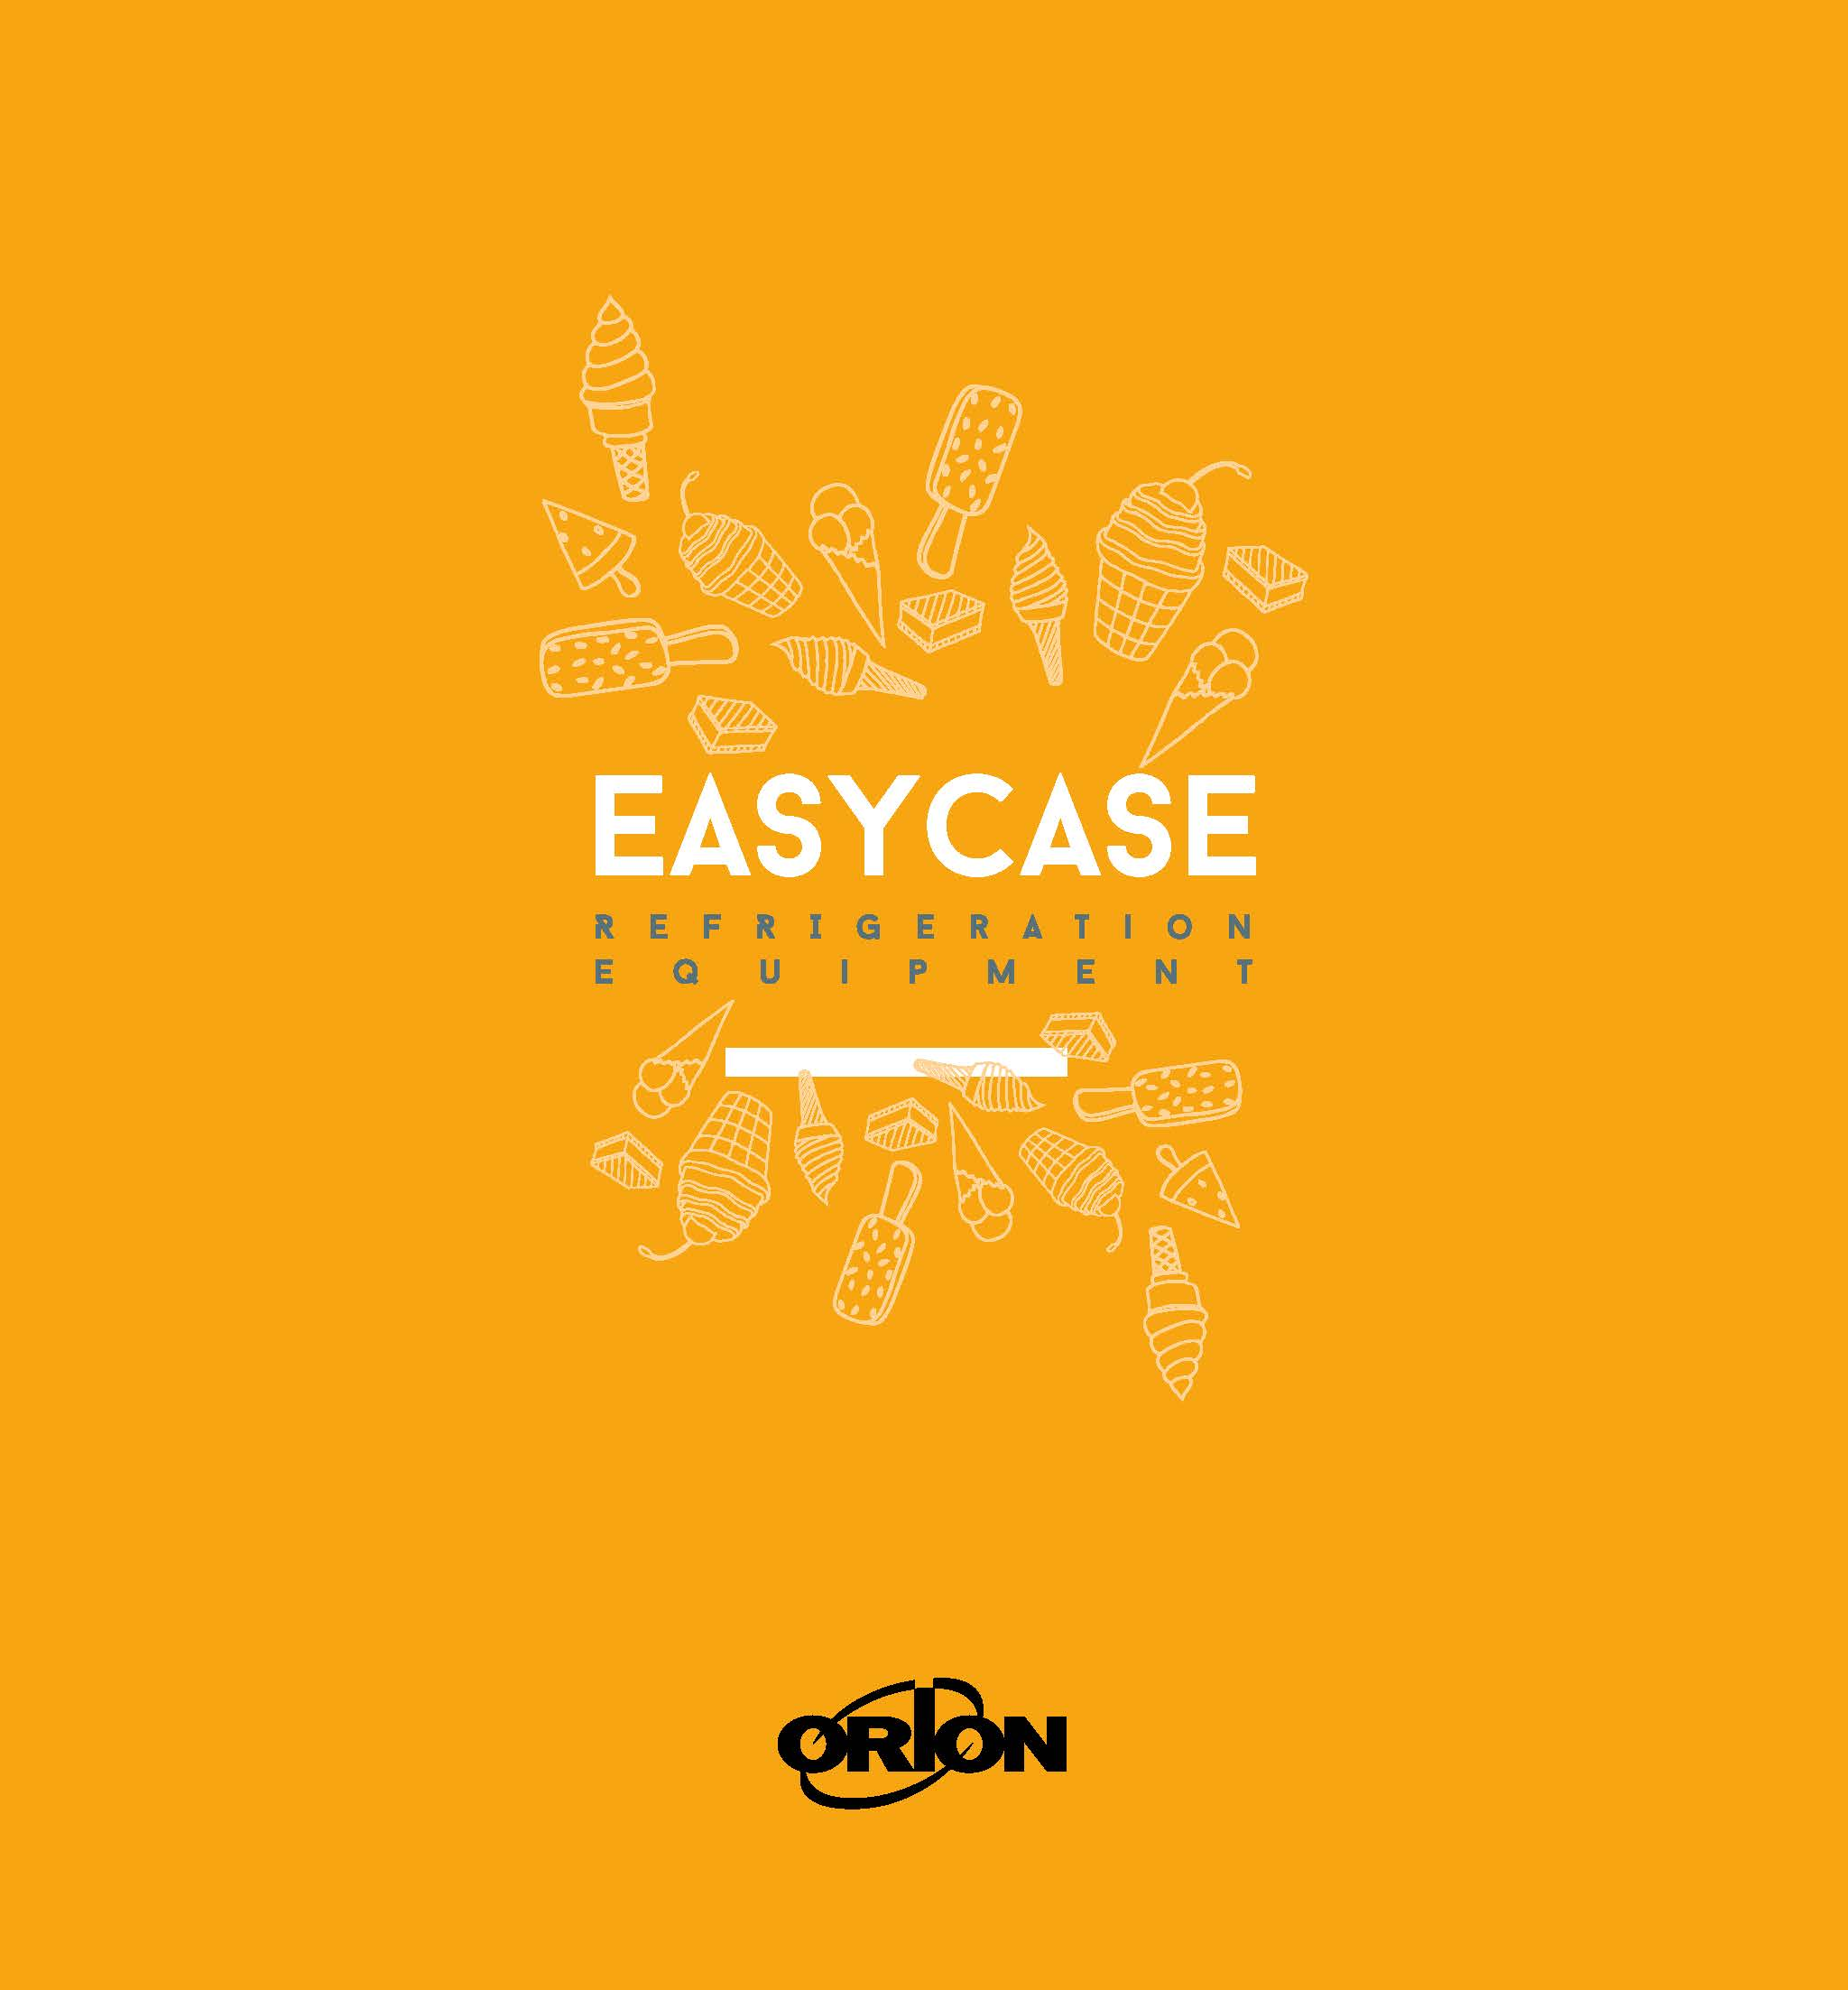 Orion – Easy Best